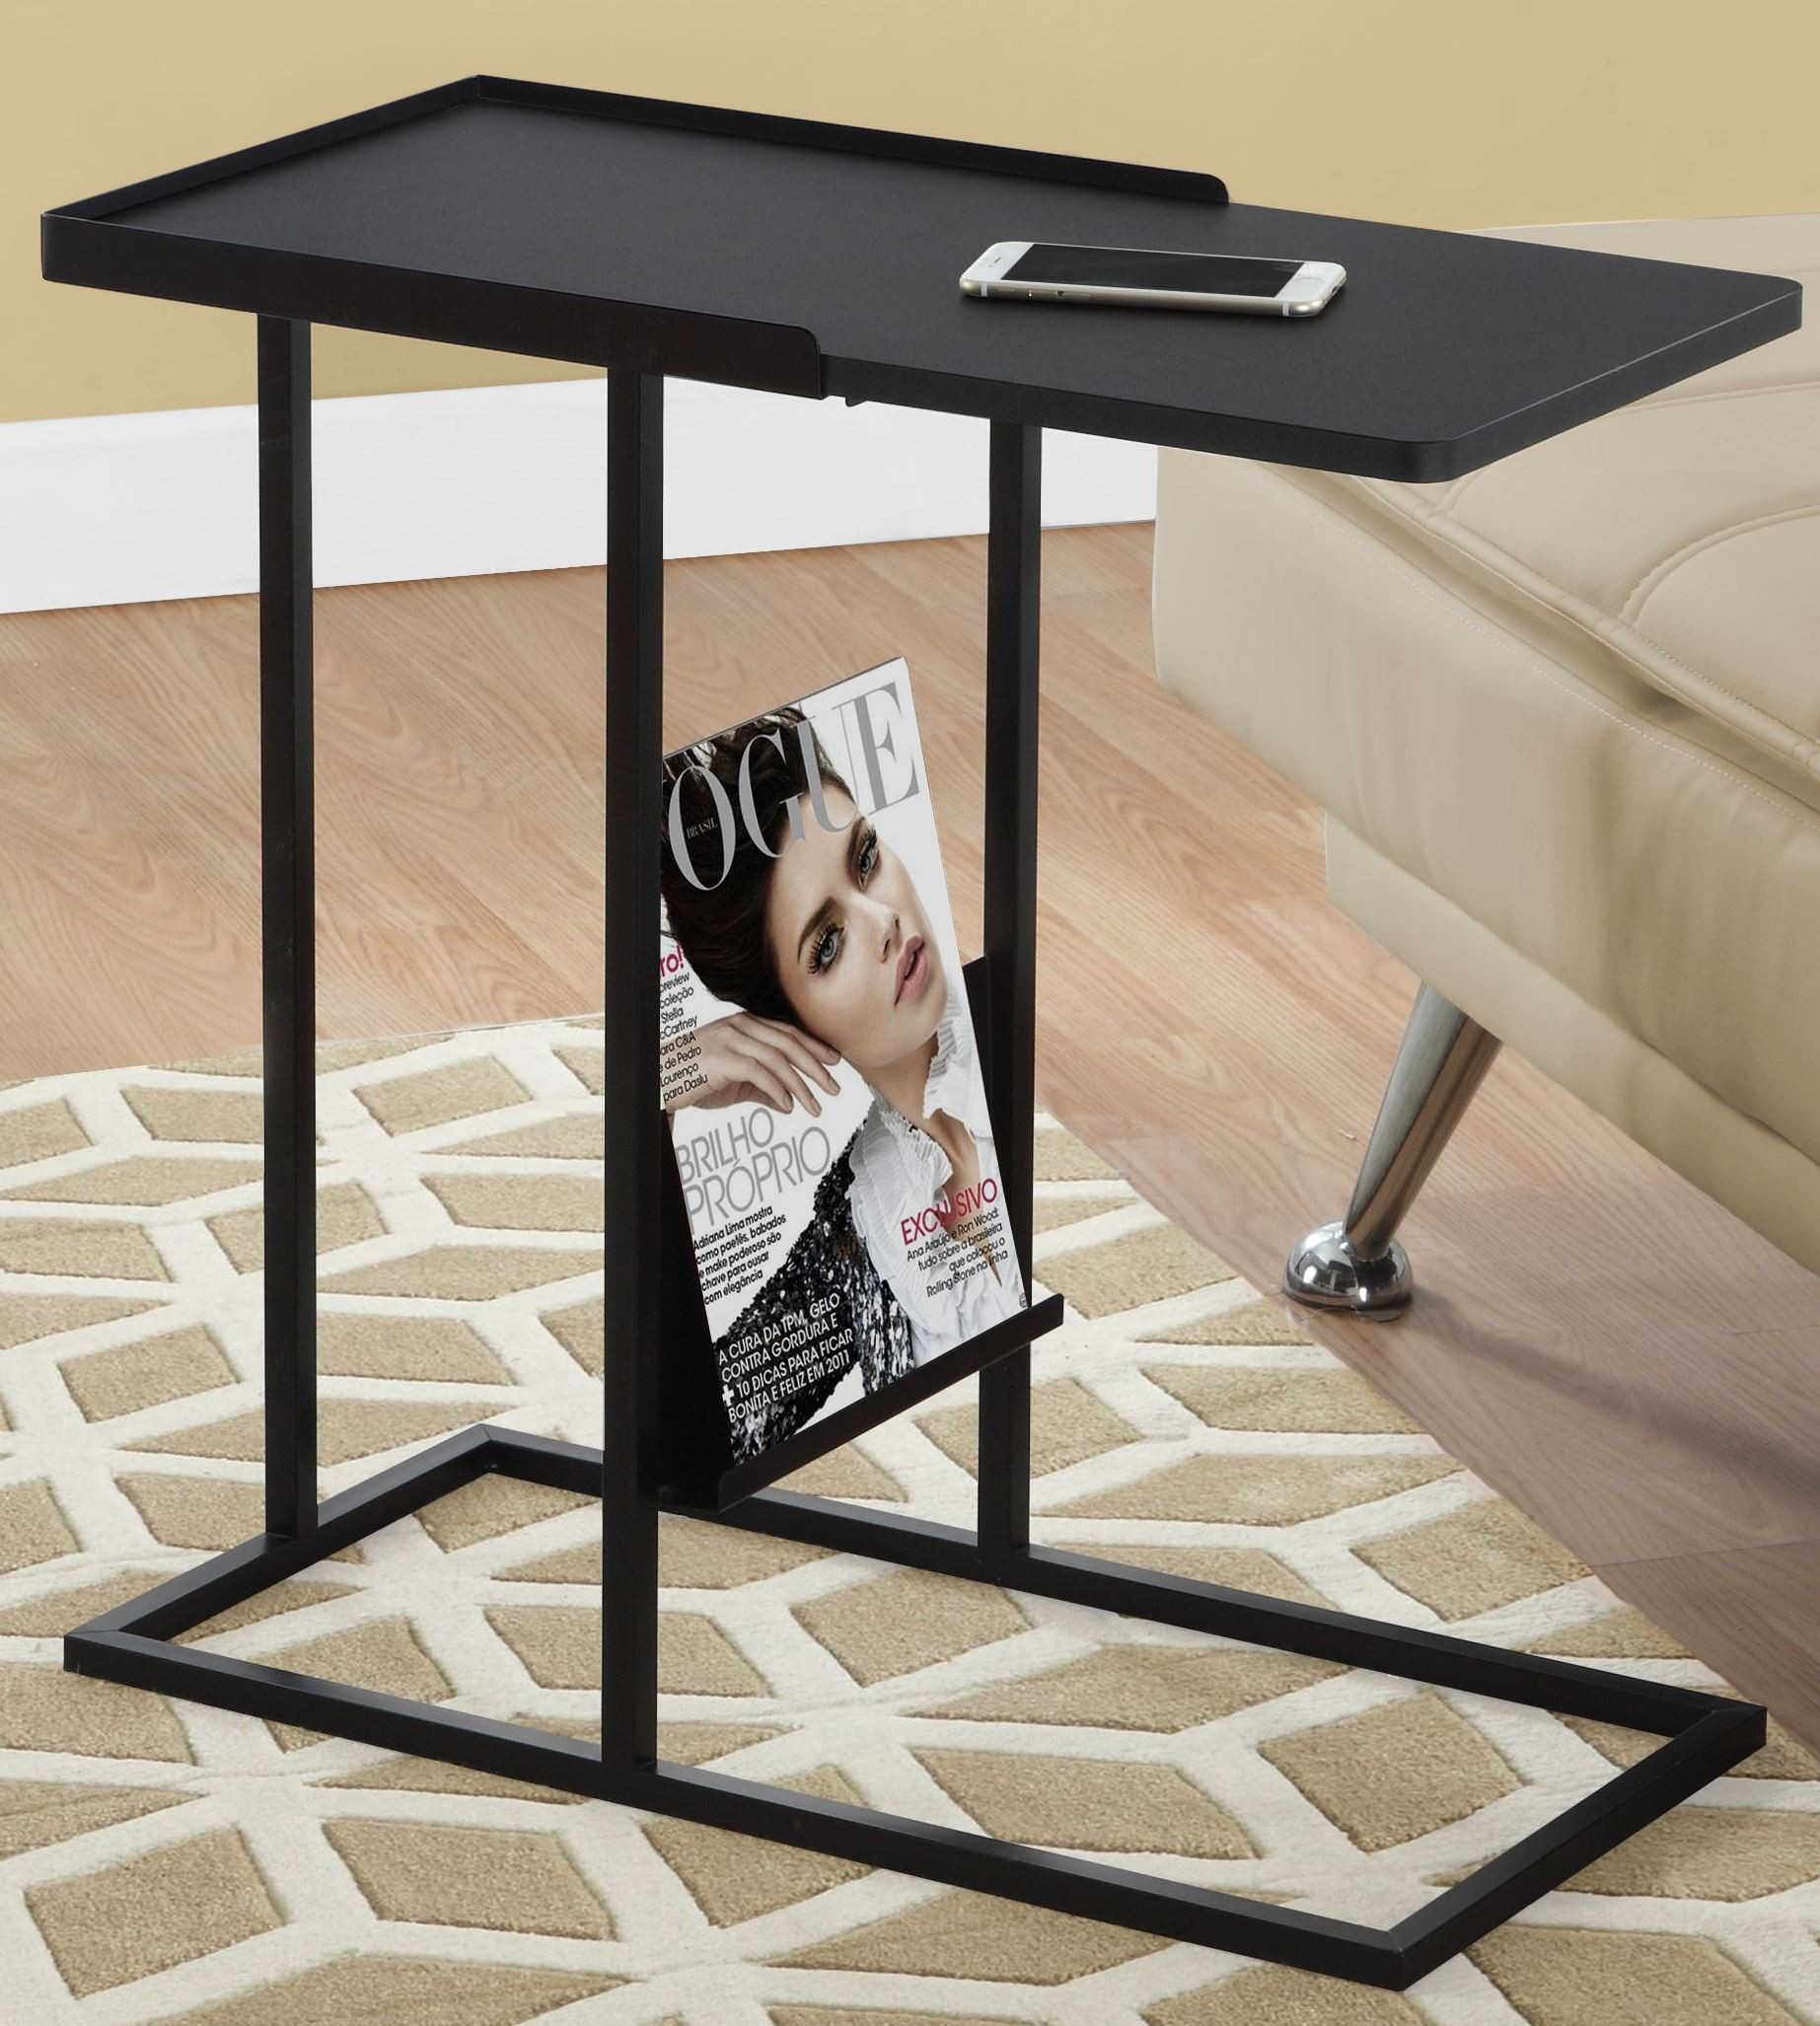 black metal accent table monarch modern end glass patio with umbrella hole foot long sofa nightstands clearance wine rack dining room sliding barn door jcpenney rugs occassional